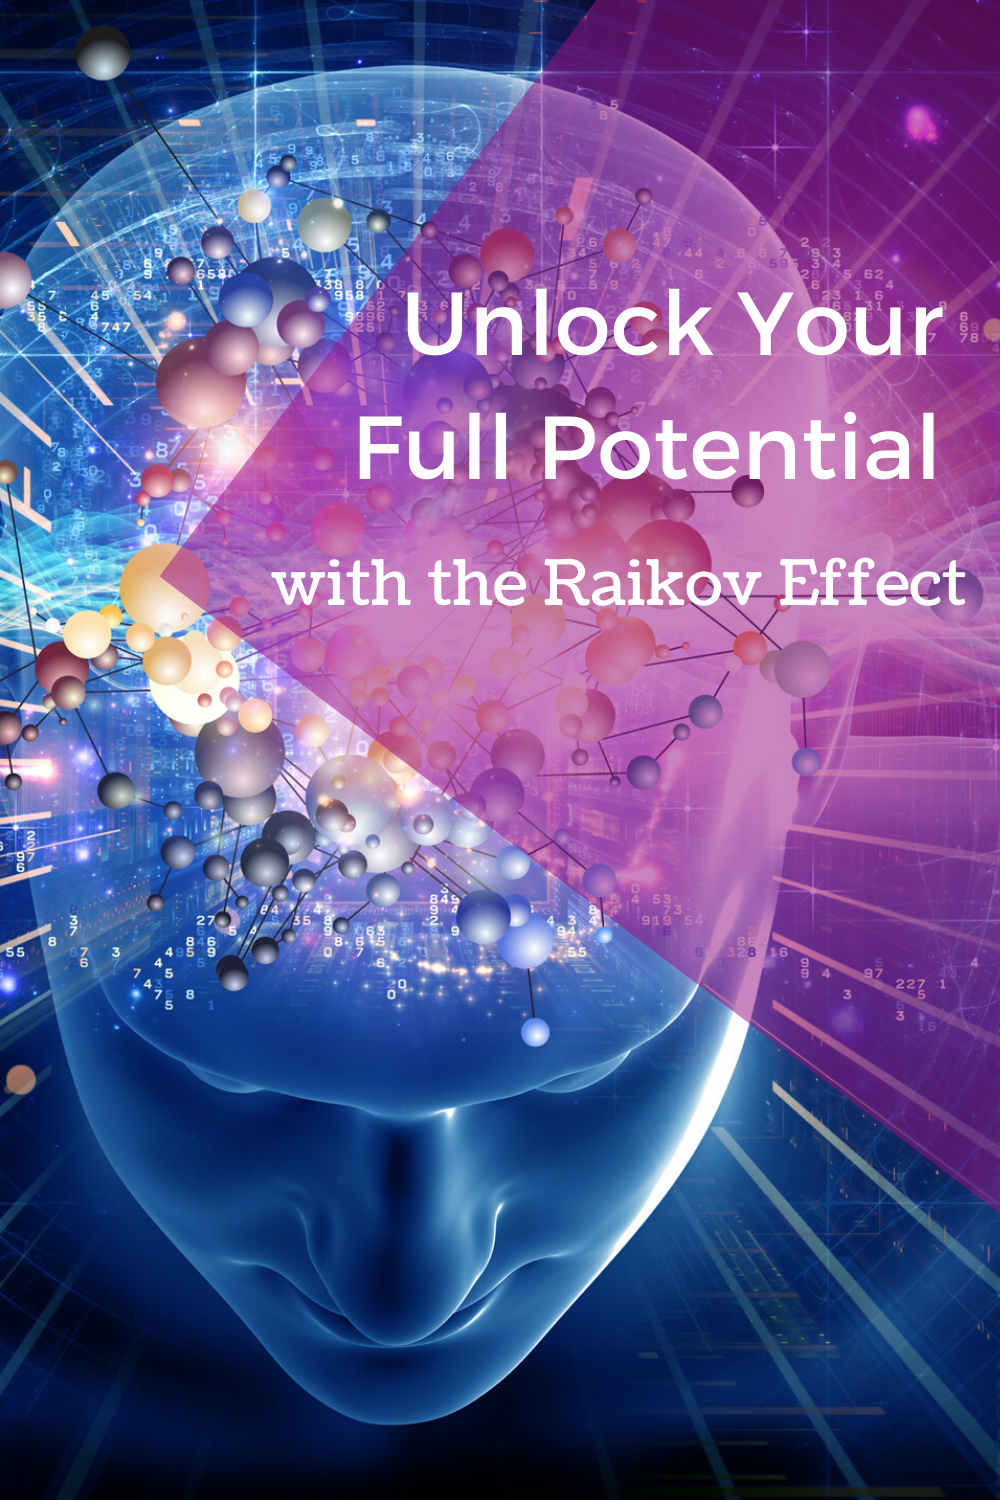 raikov effect full potential image